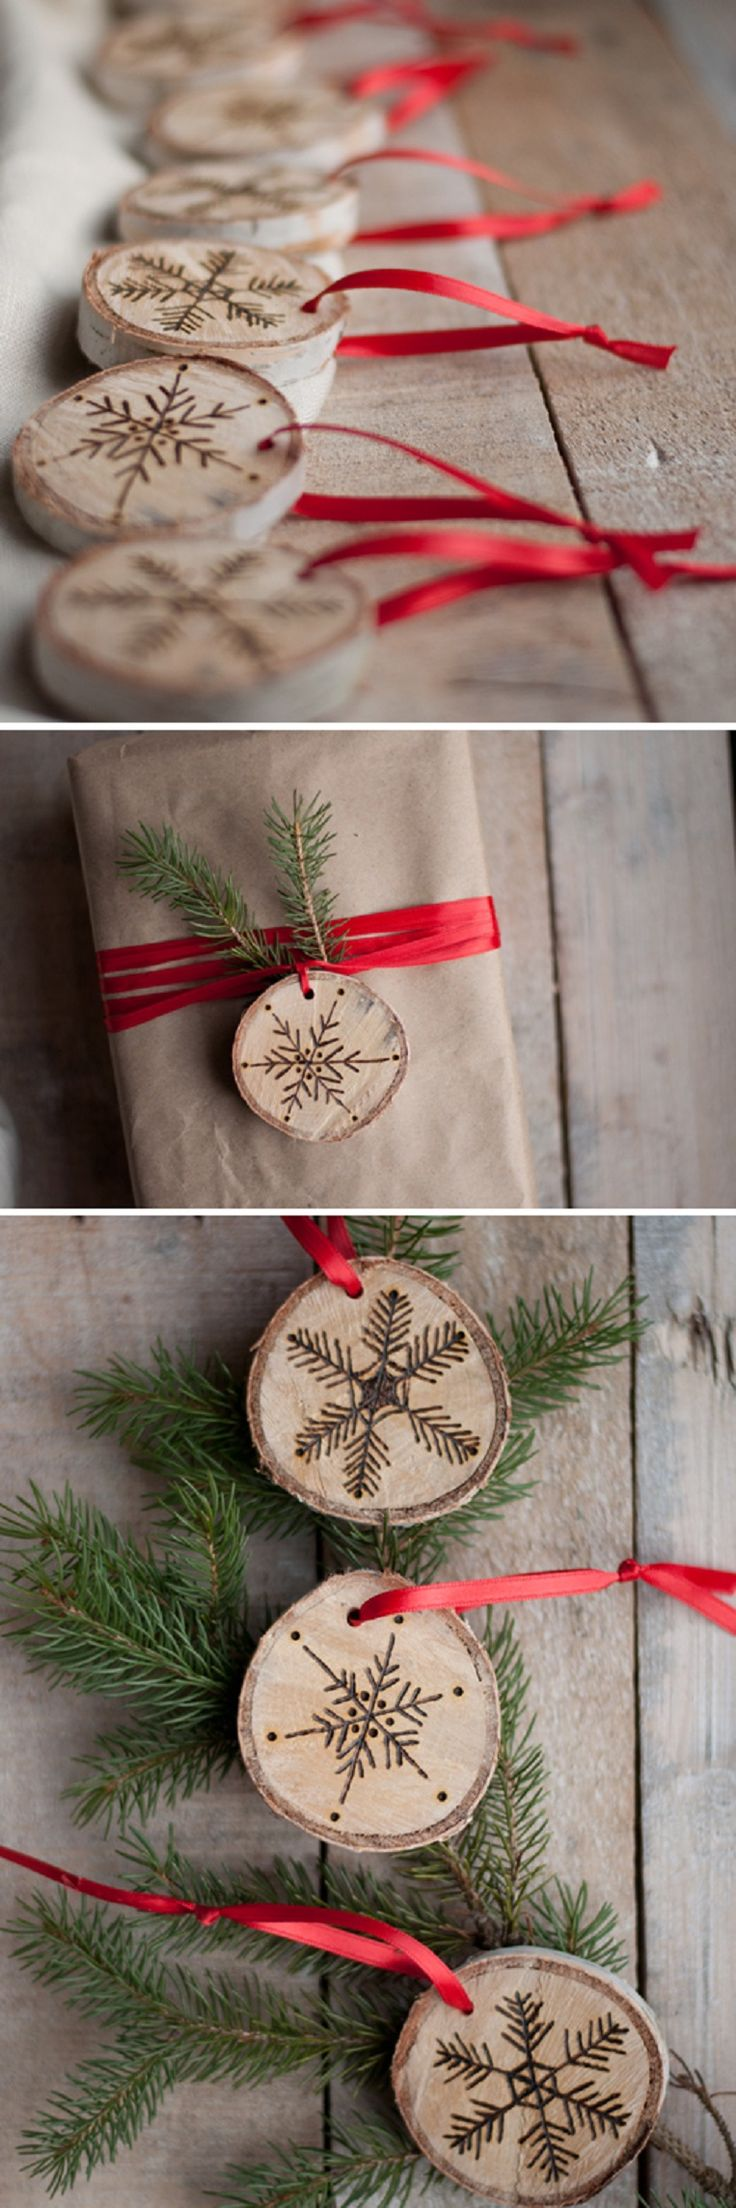 DIY Etched Snowflake Ornaments in Birch - 15 Beautiful DIY Snowflake Decorations for Winter   GleamItUp